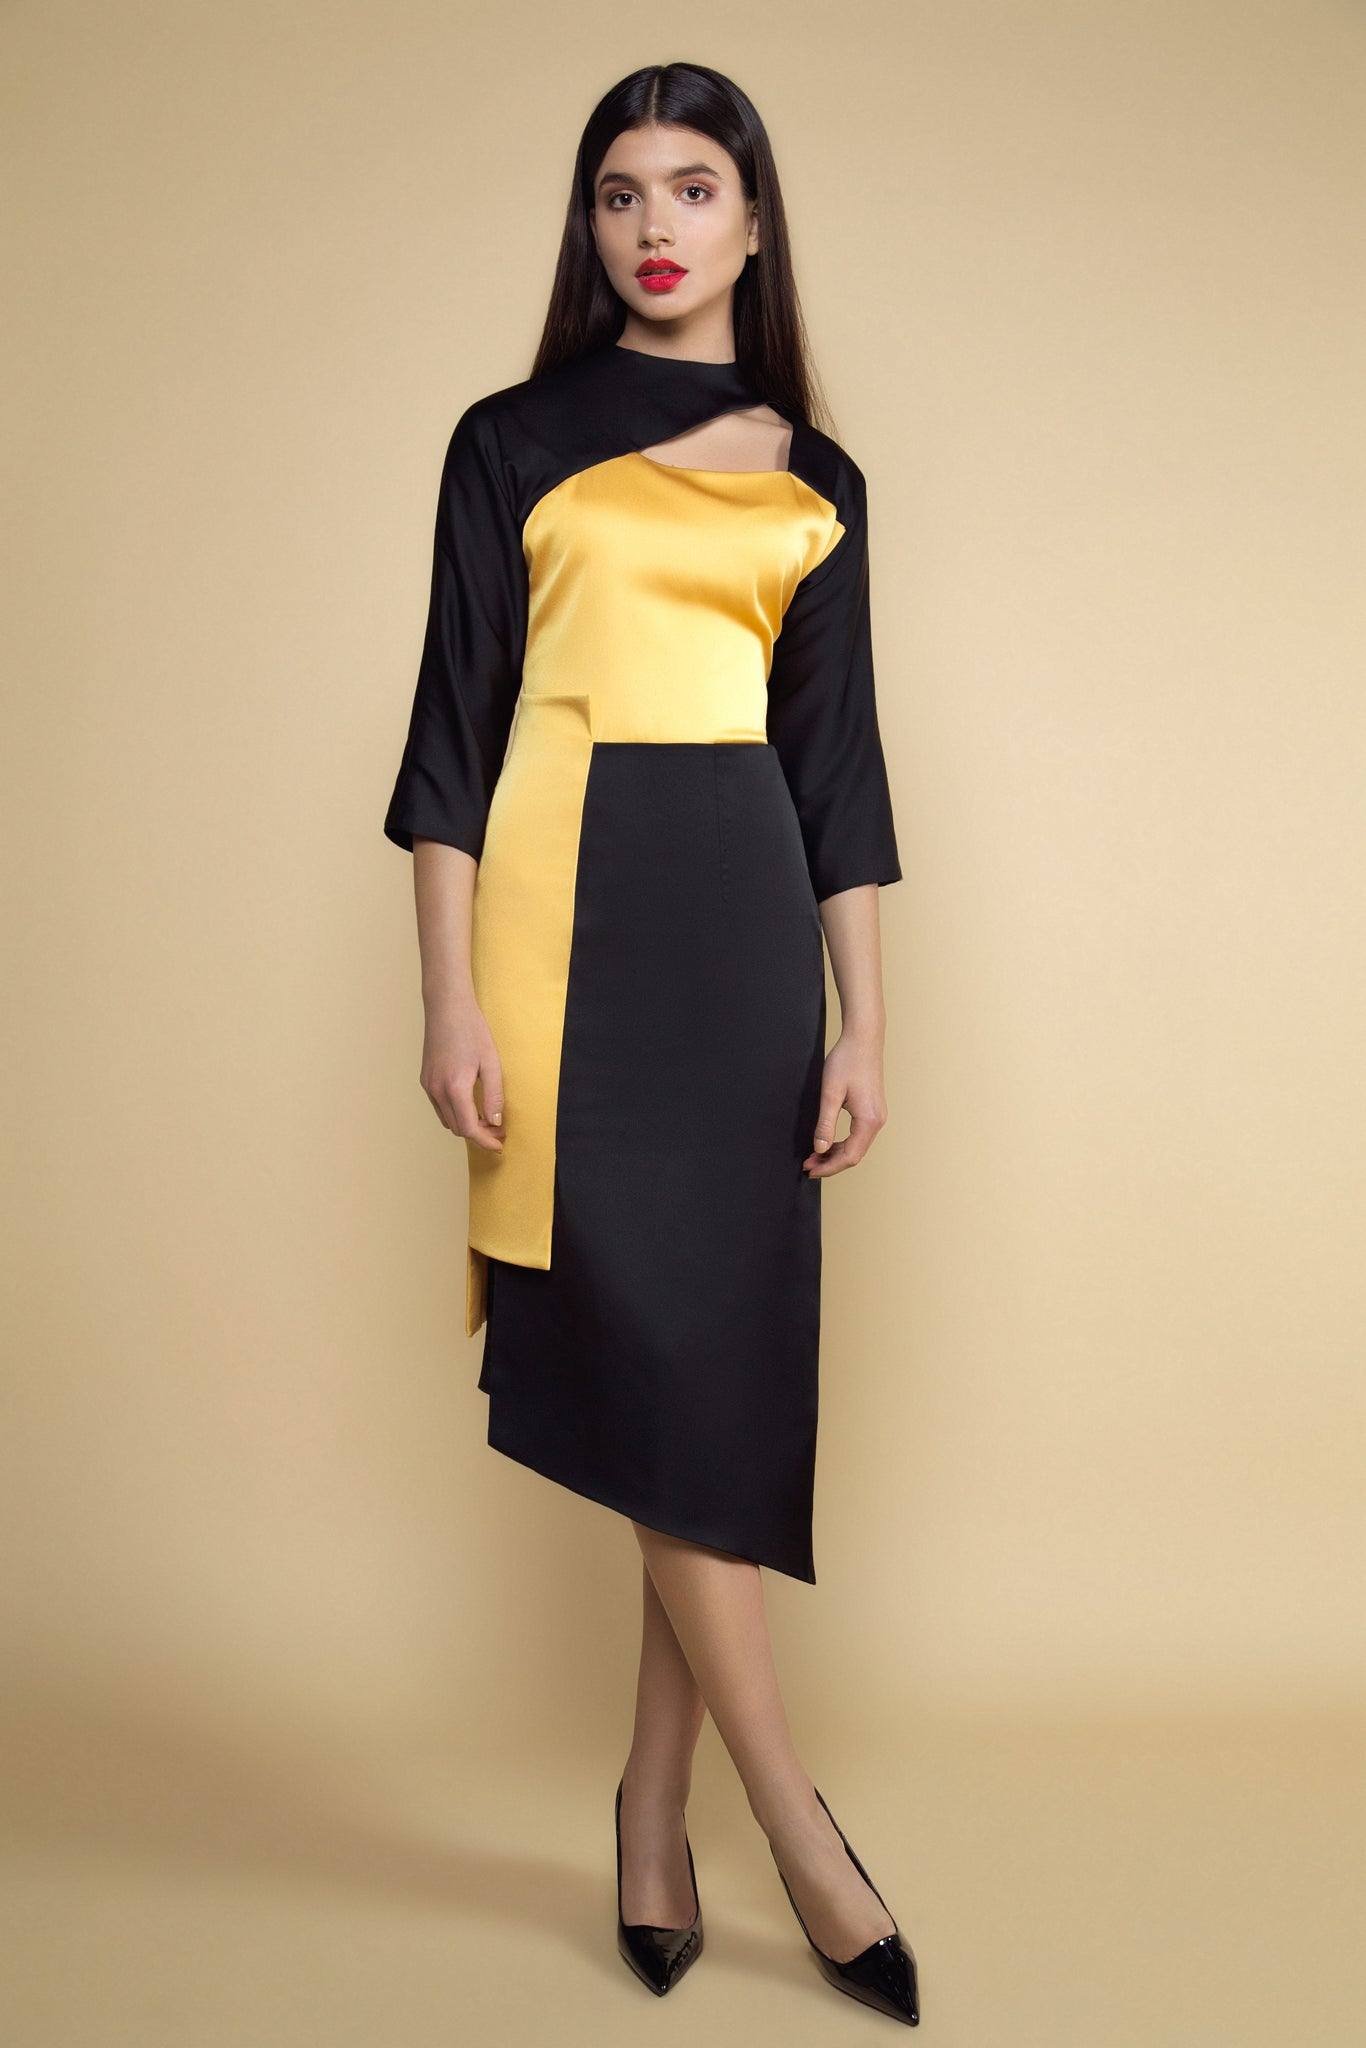 Neckline-baring Top and Two-tone Uneven Hem Skirt